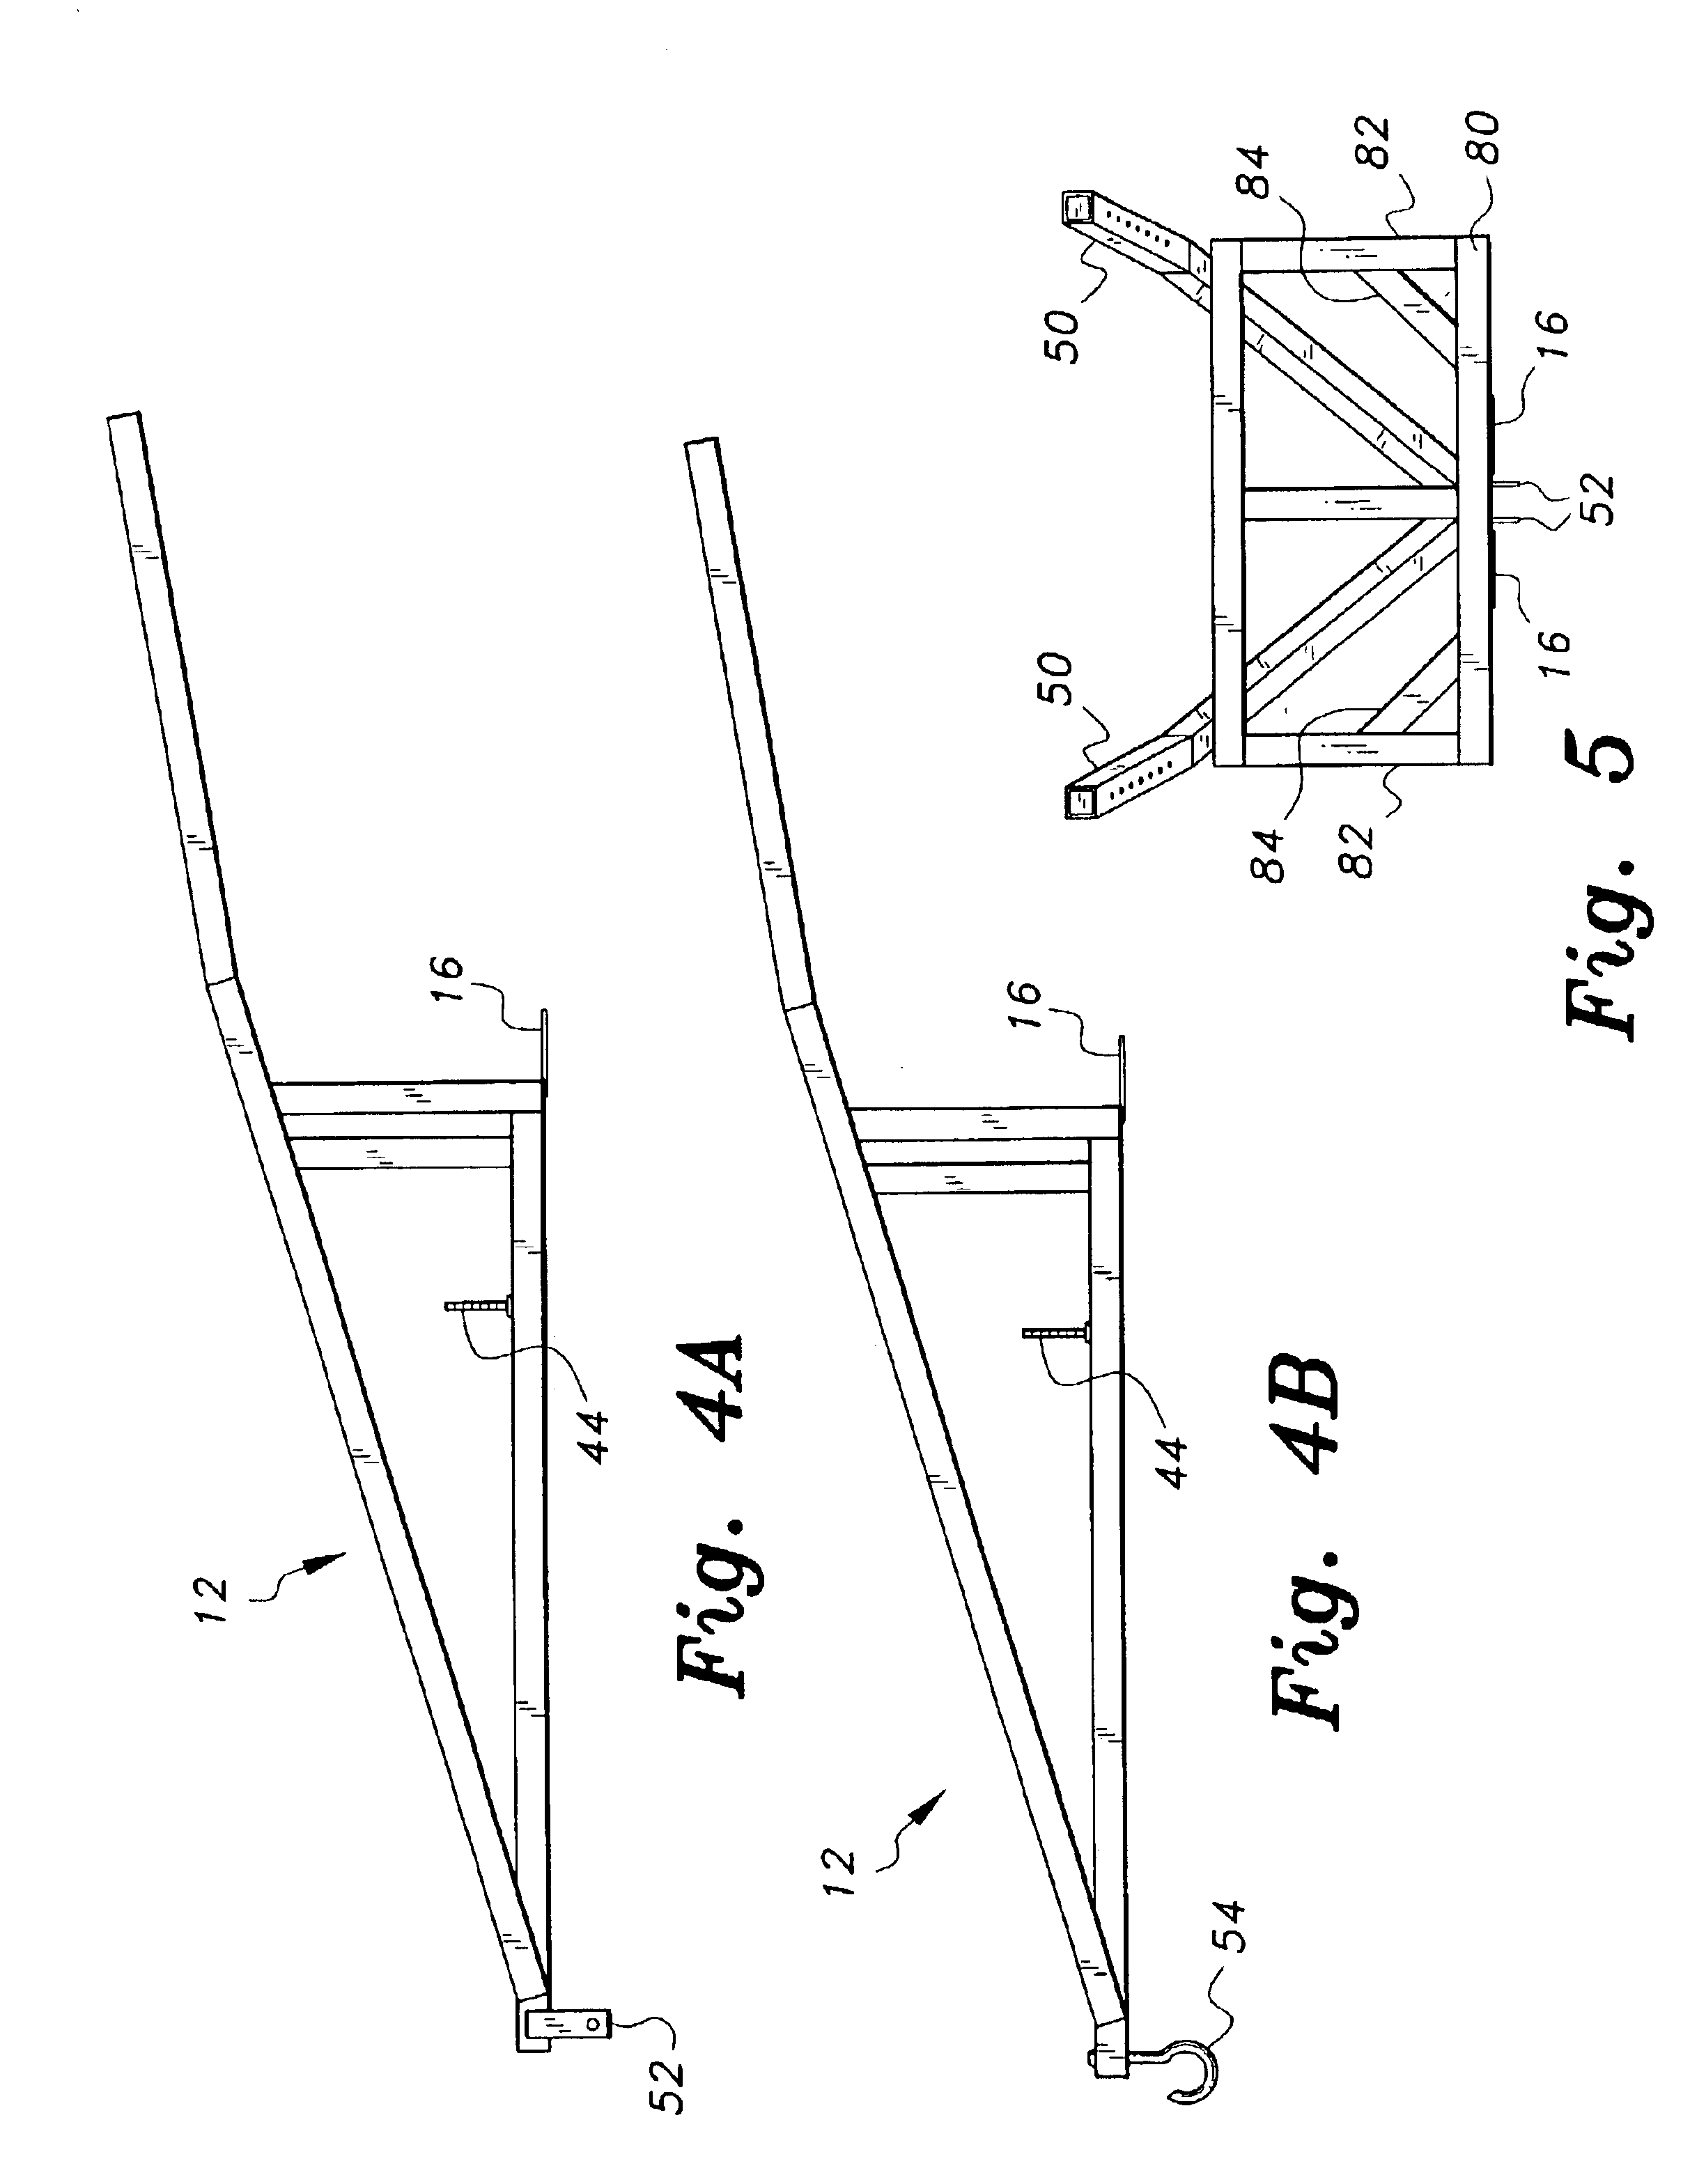 Deer skinning pole plans - Patent Drawing